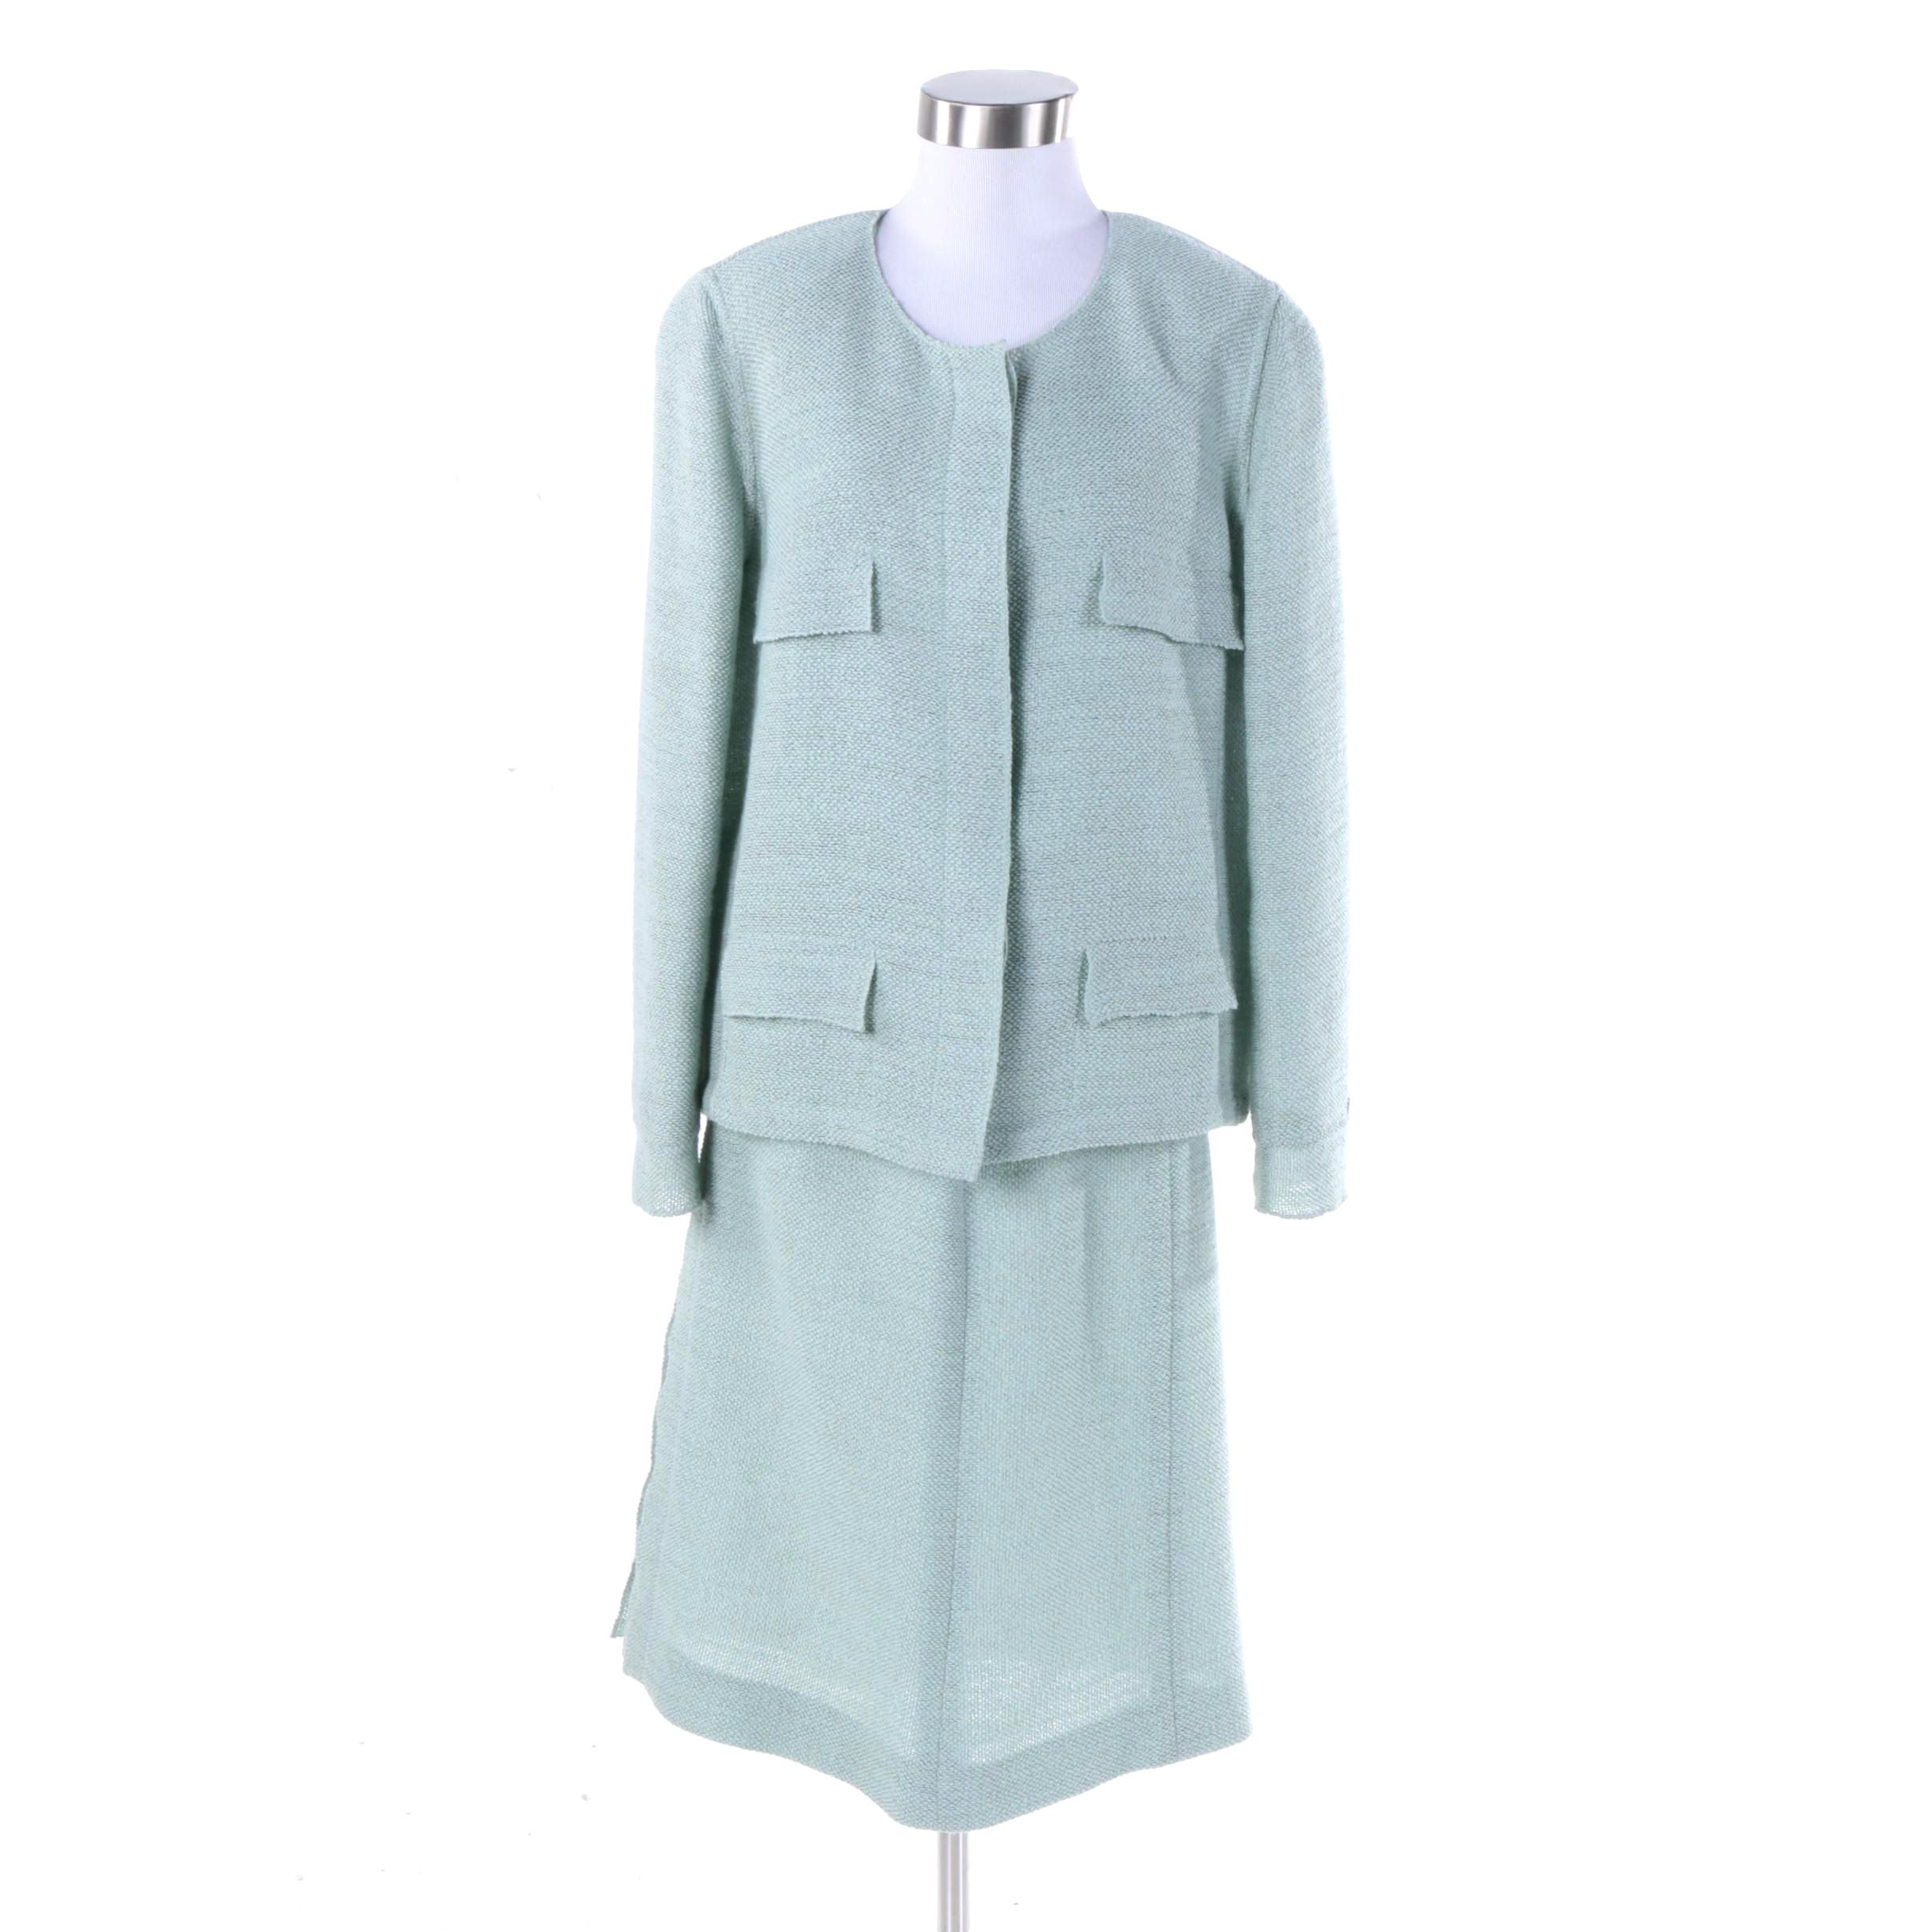 Women's Chanel Boucle Wool Blend Skirt Suit